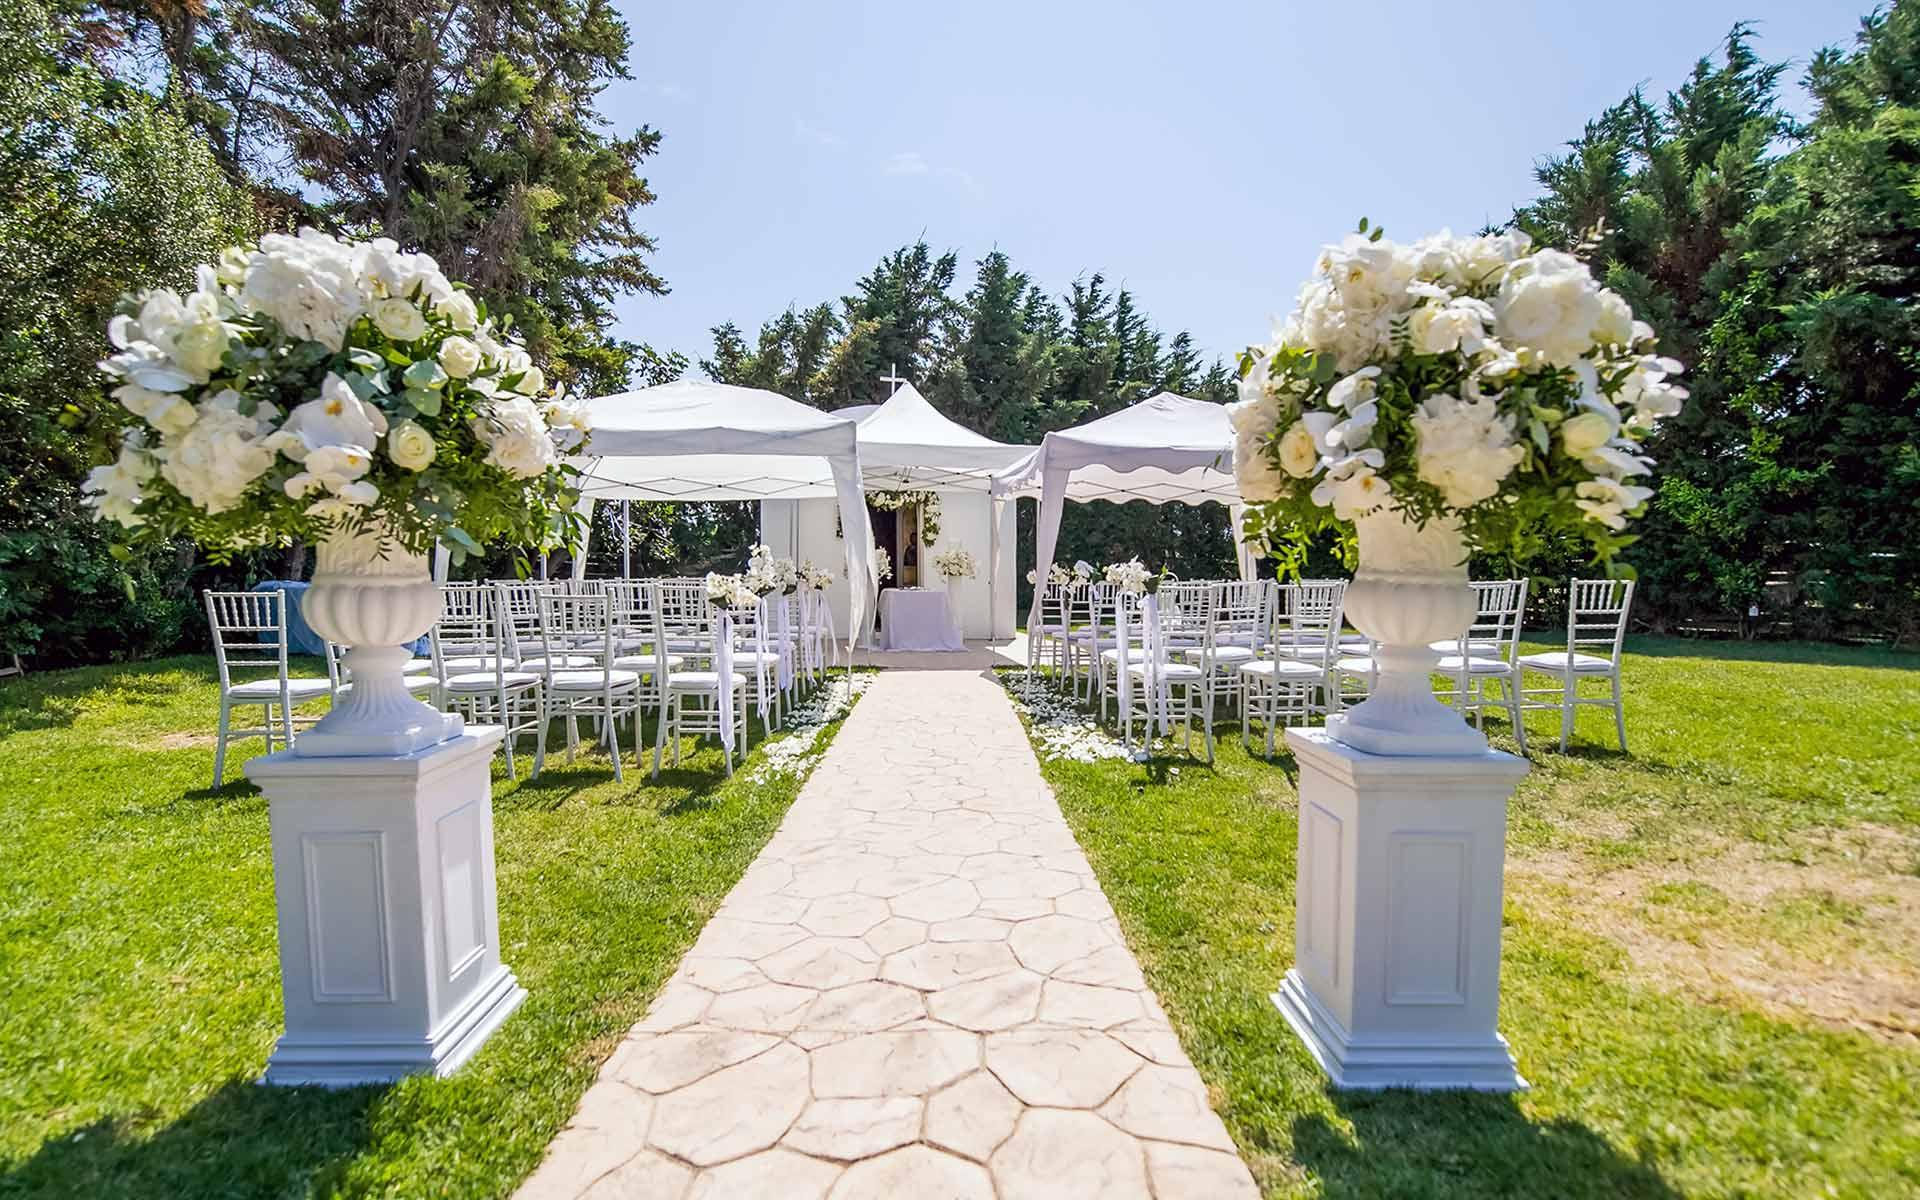 entrance-of-the-aisle-by-Diamond-Events-Wedding-Event-planning-services